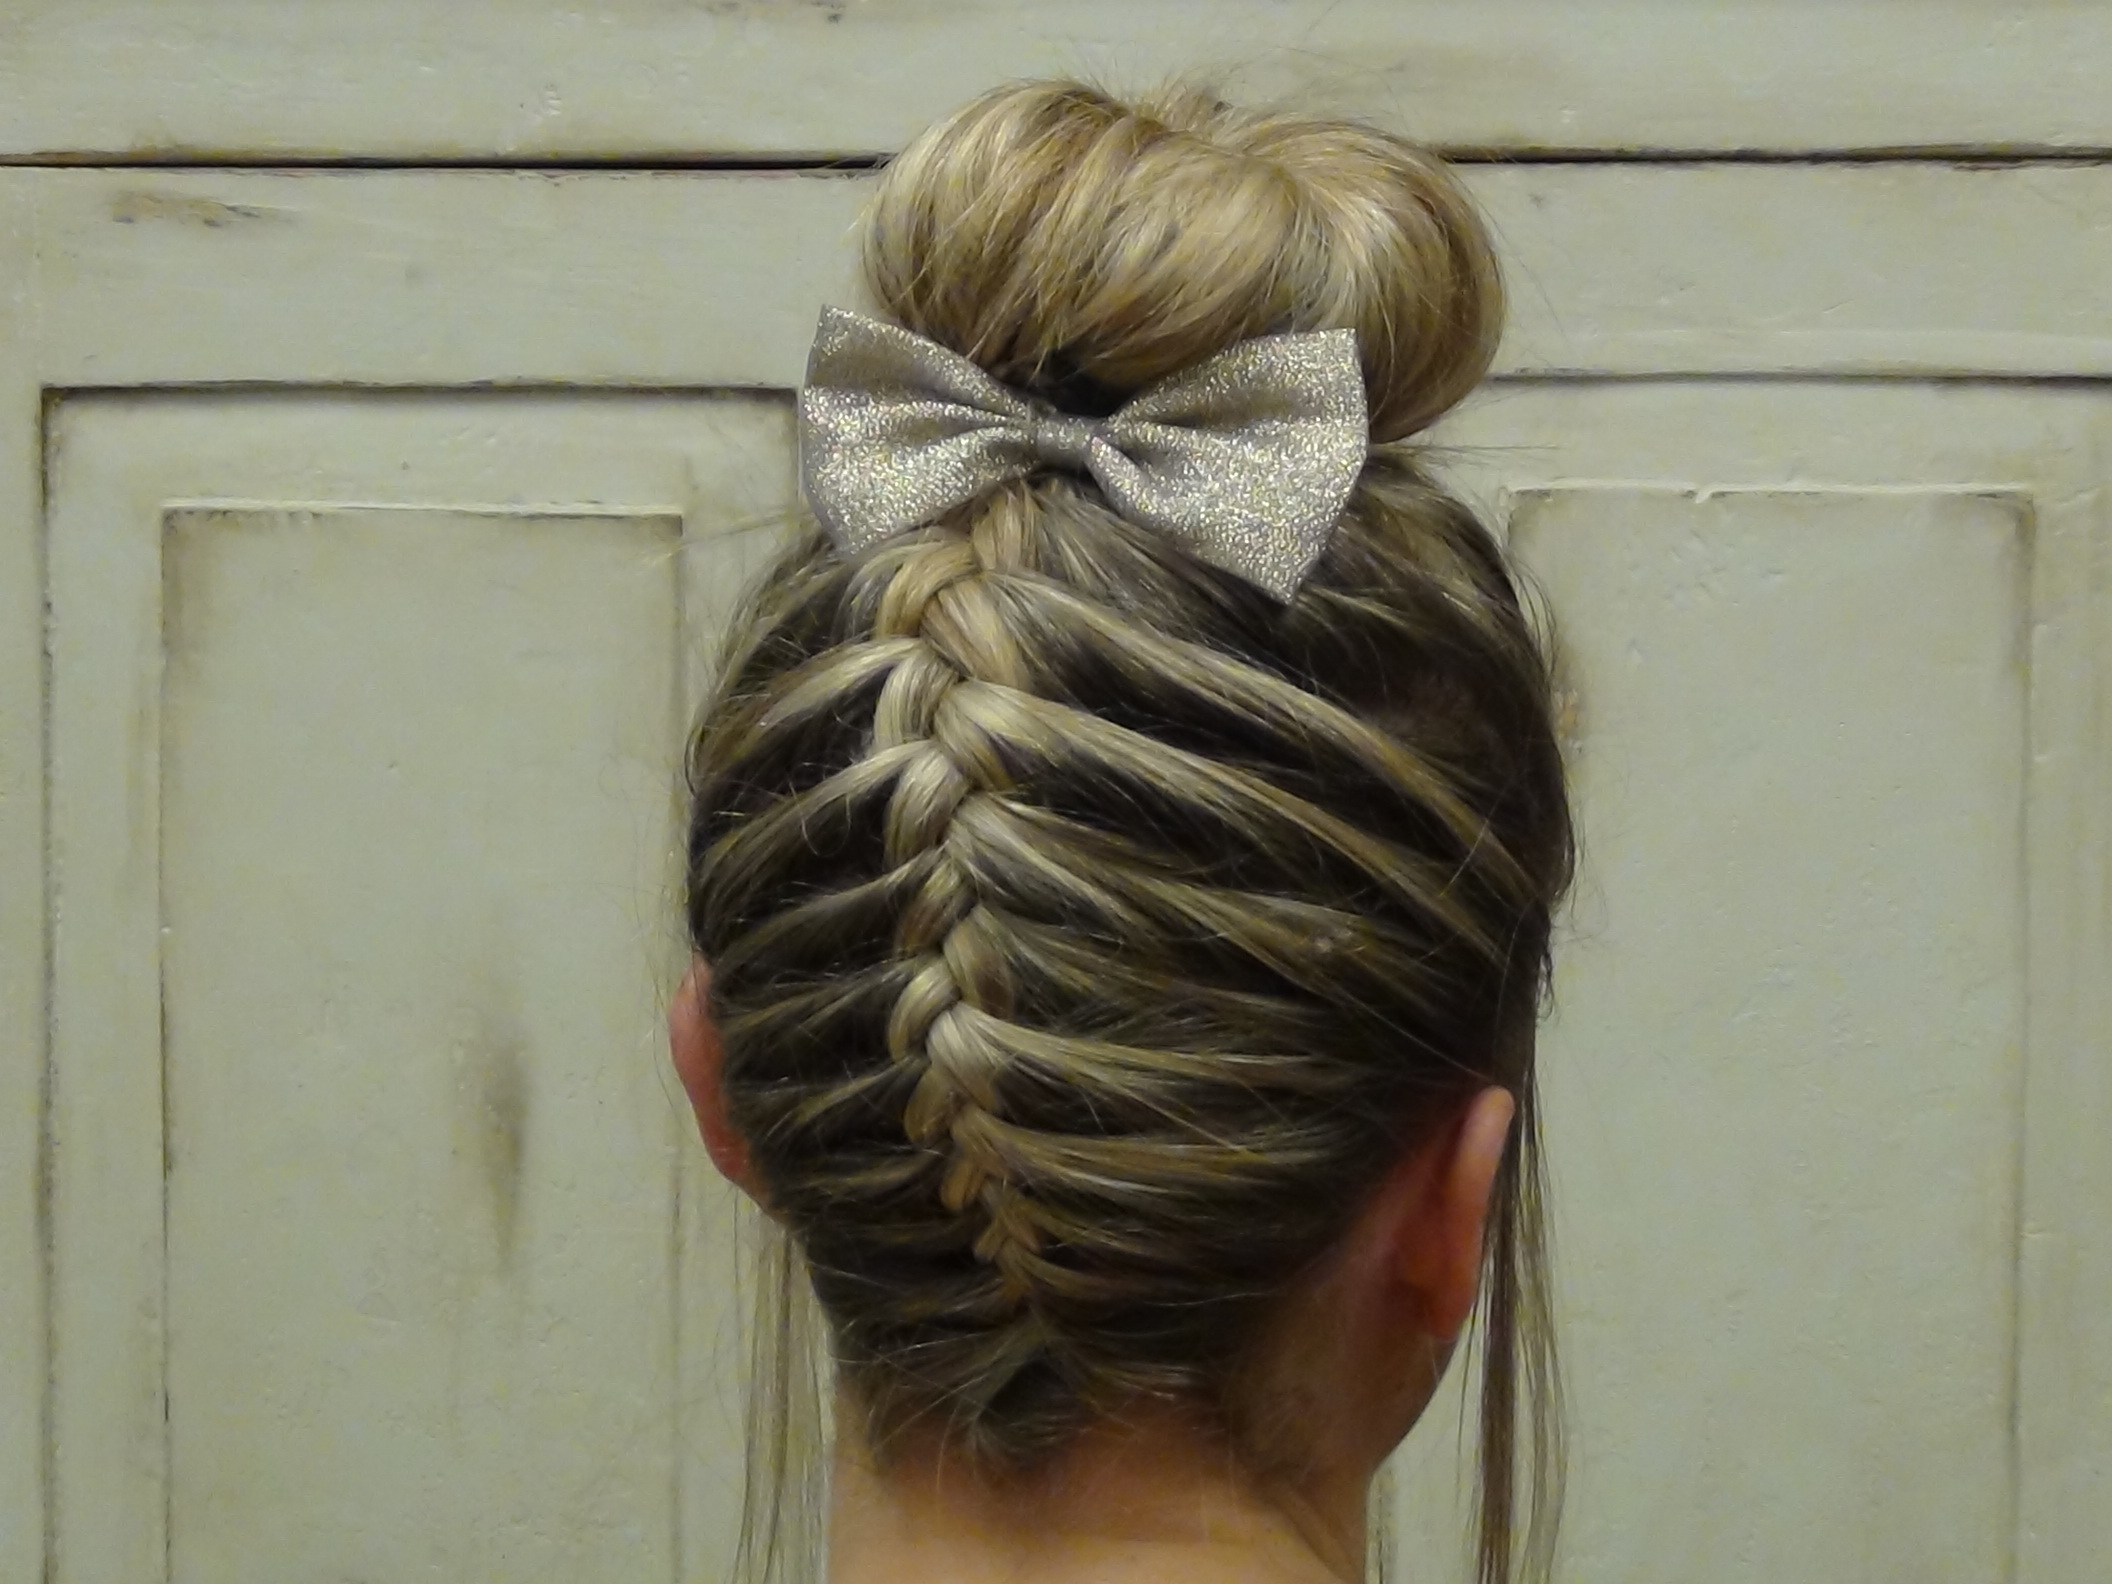 Hair Style Vedios : Girls Hairstyles Top 5 Watched Videos Boys and Girls Hair Styles